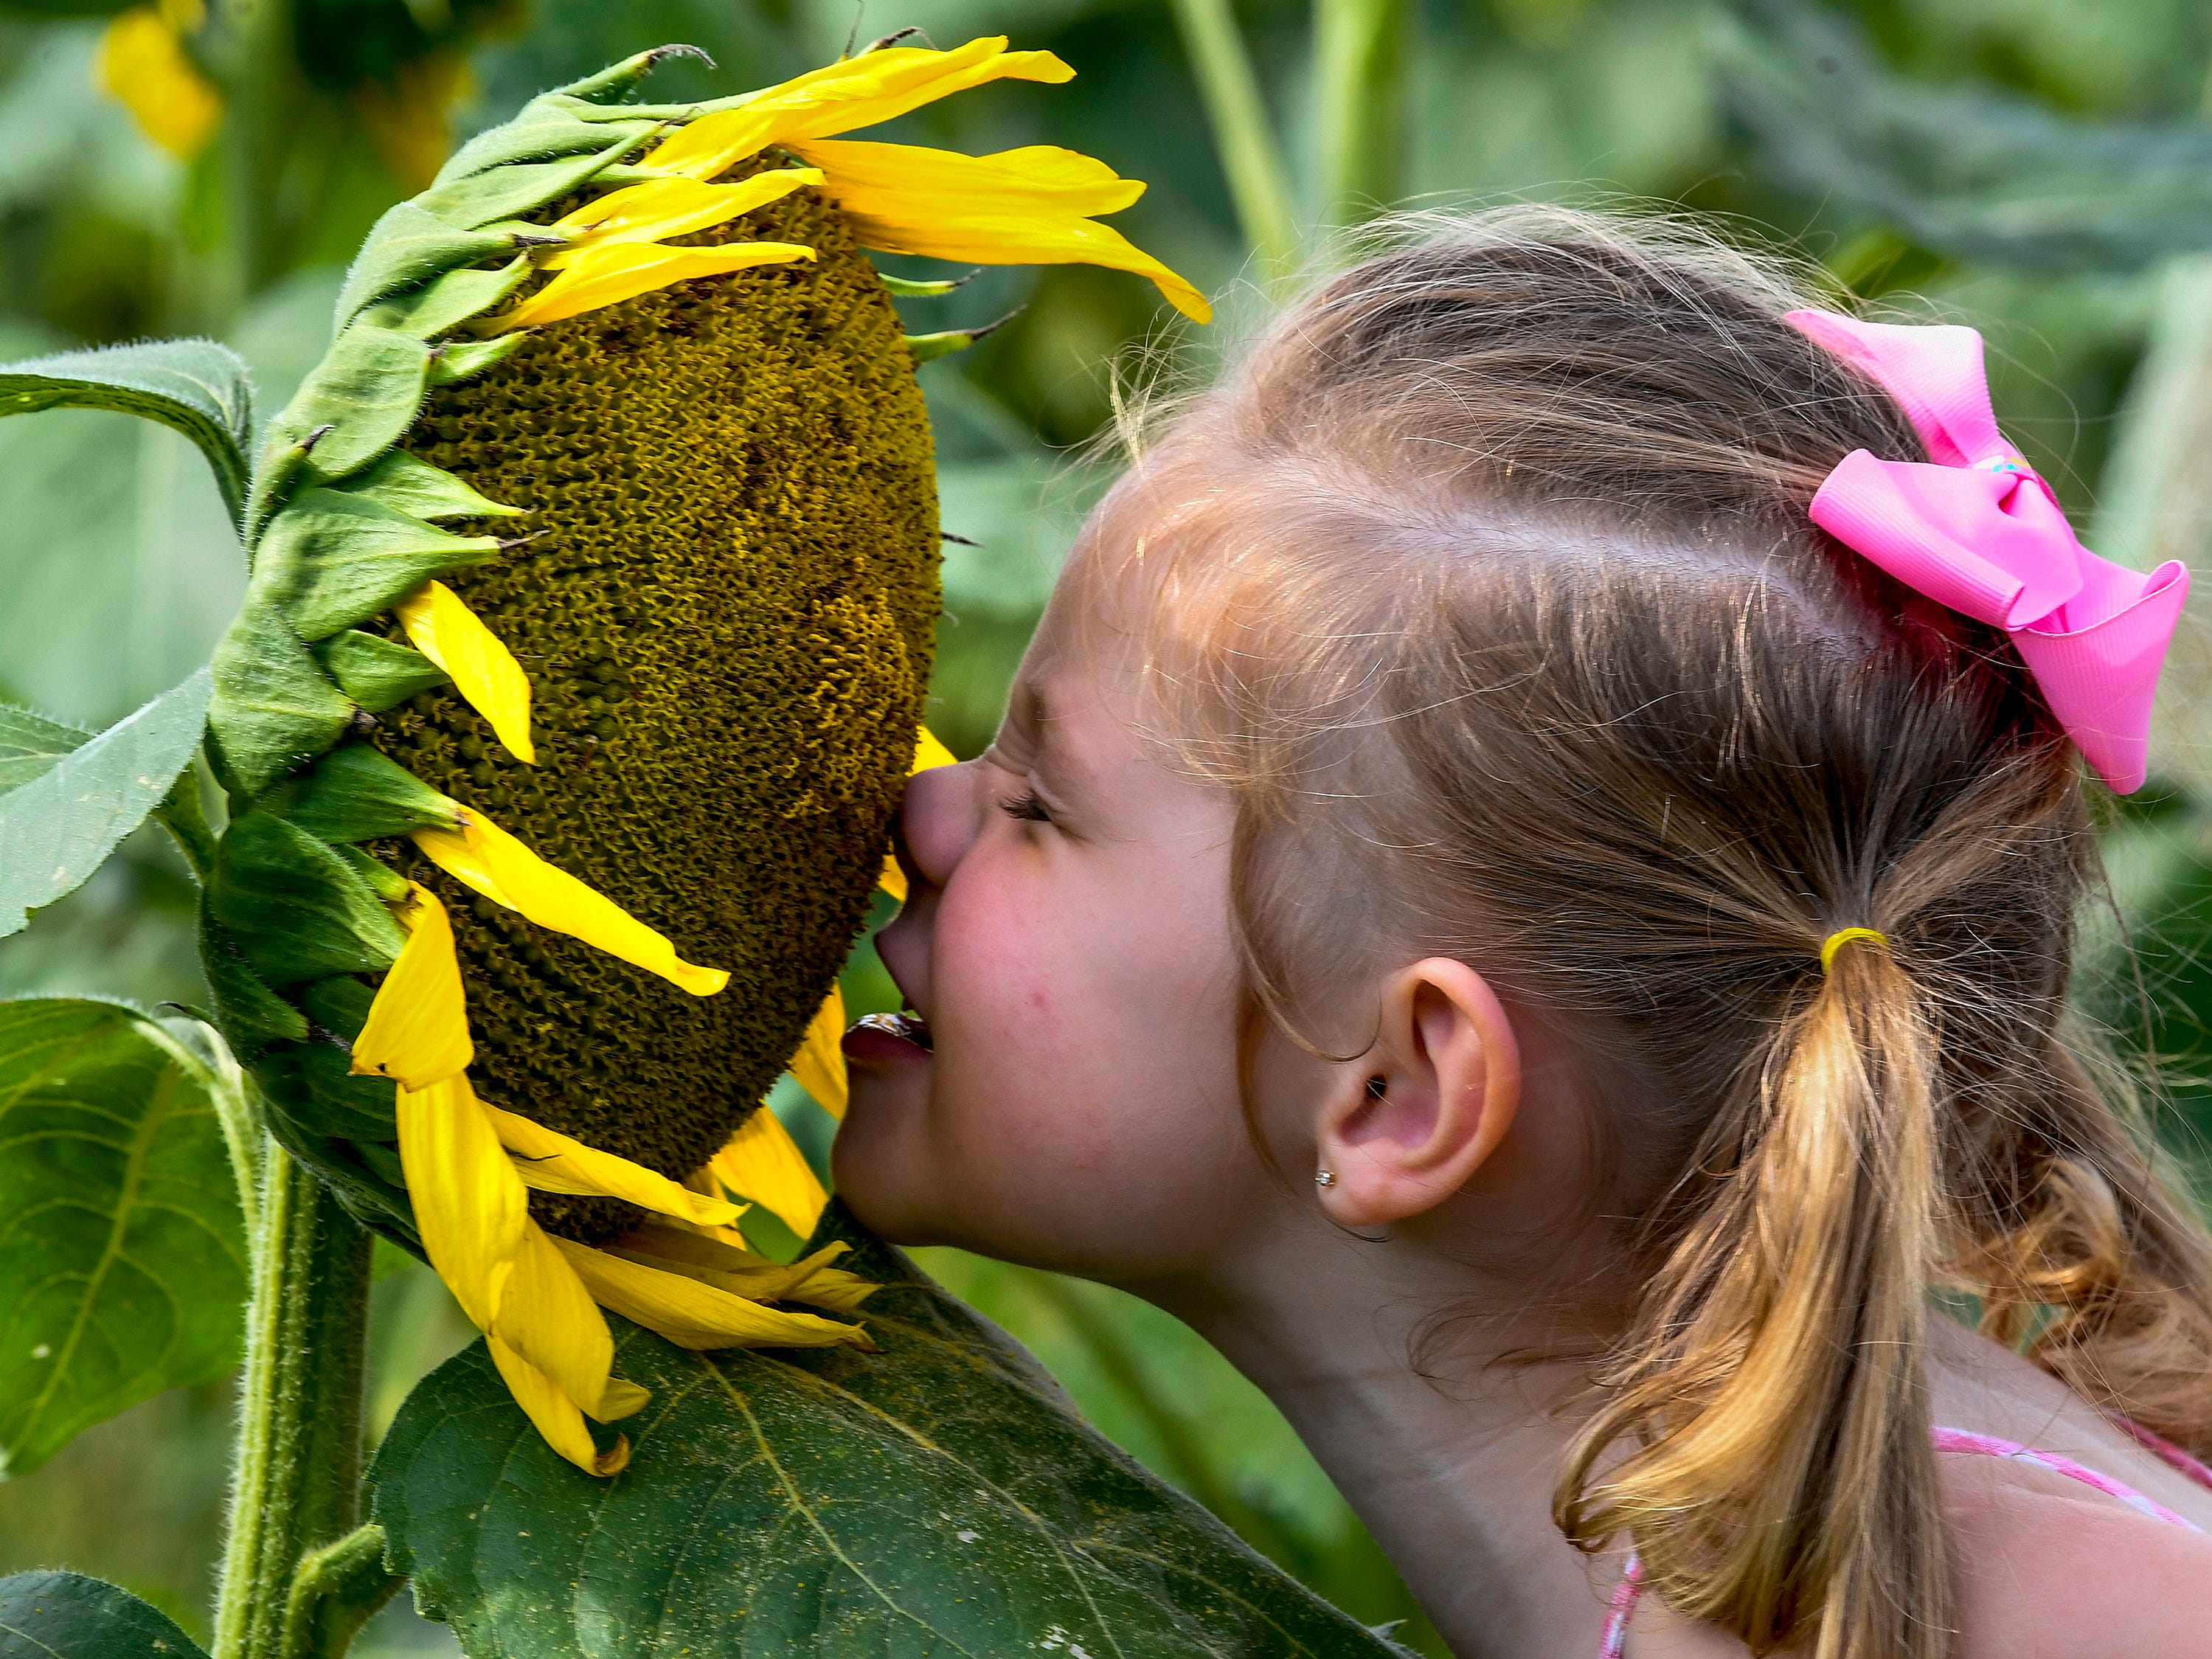 Callie Young smells a sunflower while visiting with her grandparents in the Sheridan family sunflower field about five miles west of Autaugaville, Ala. on Monday August 13, 2018.